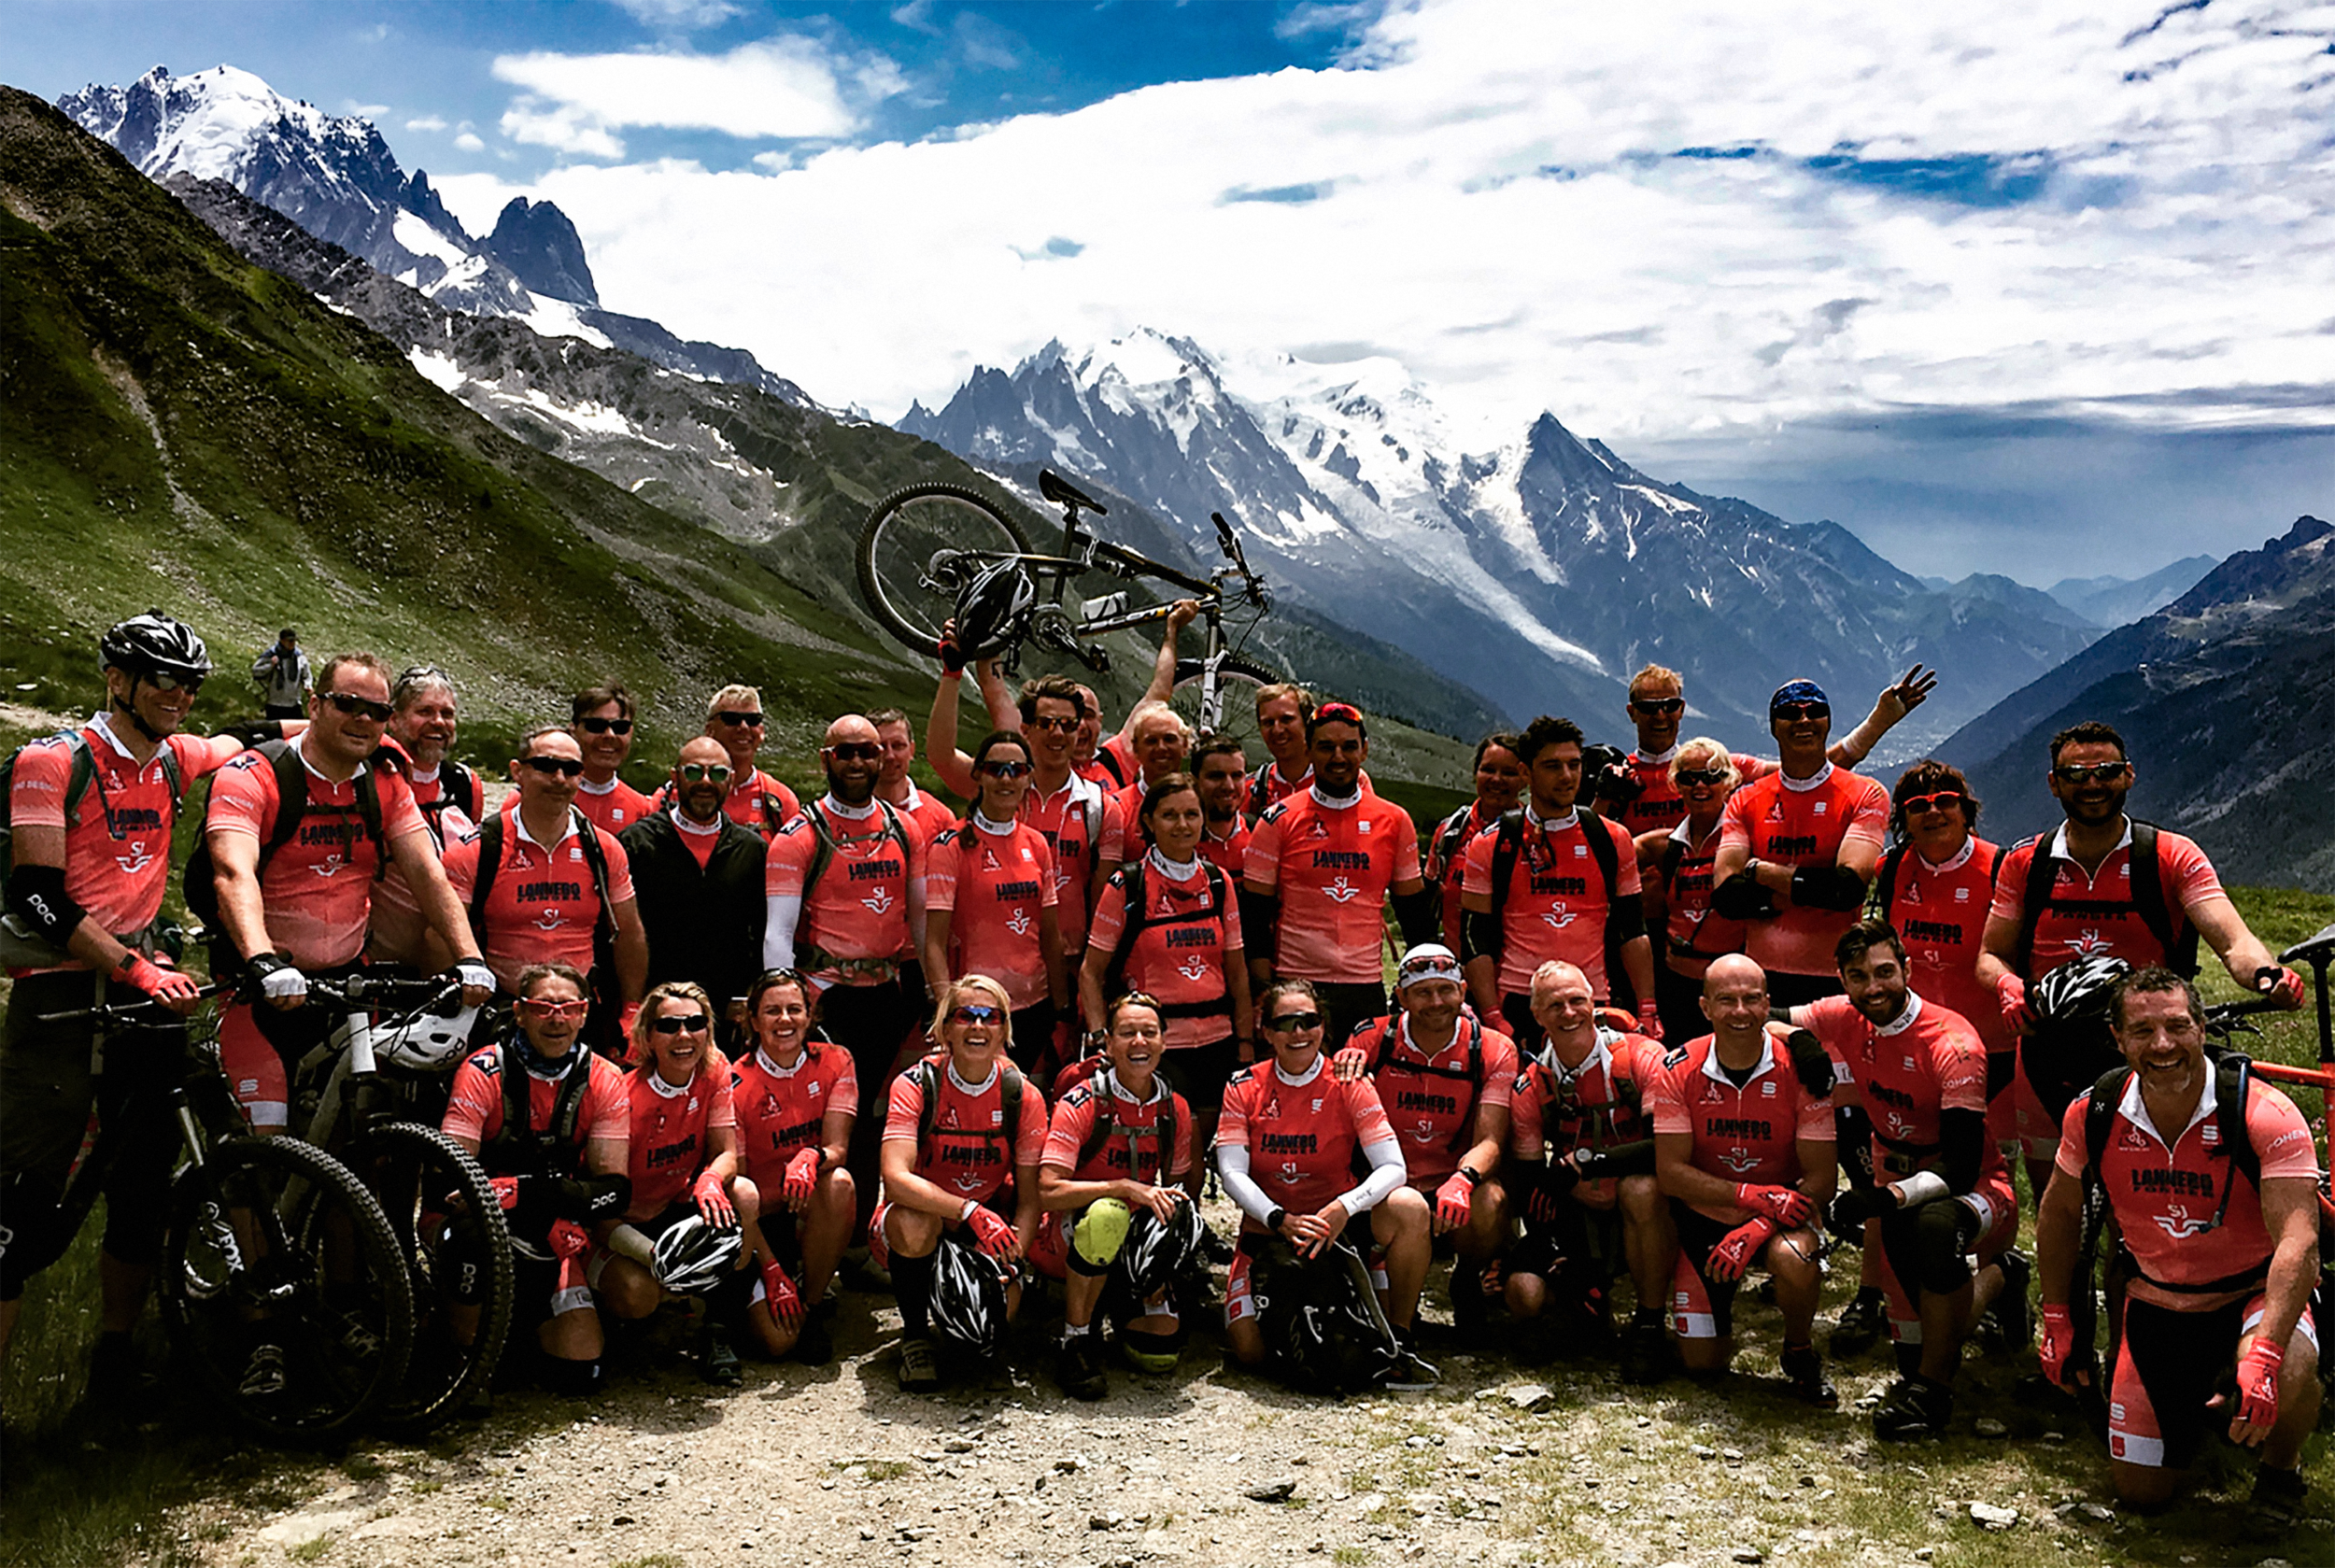 Gruppbild_The_Climb_Mont_Blanc_2017 copy.png